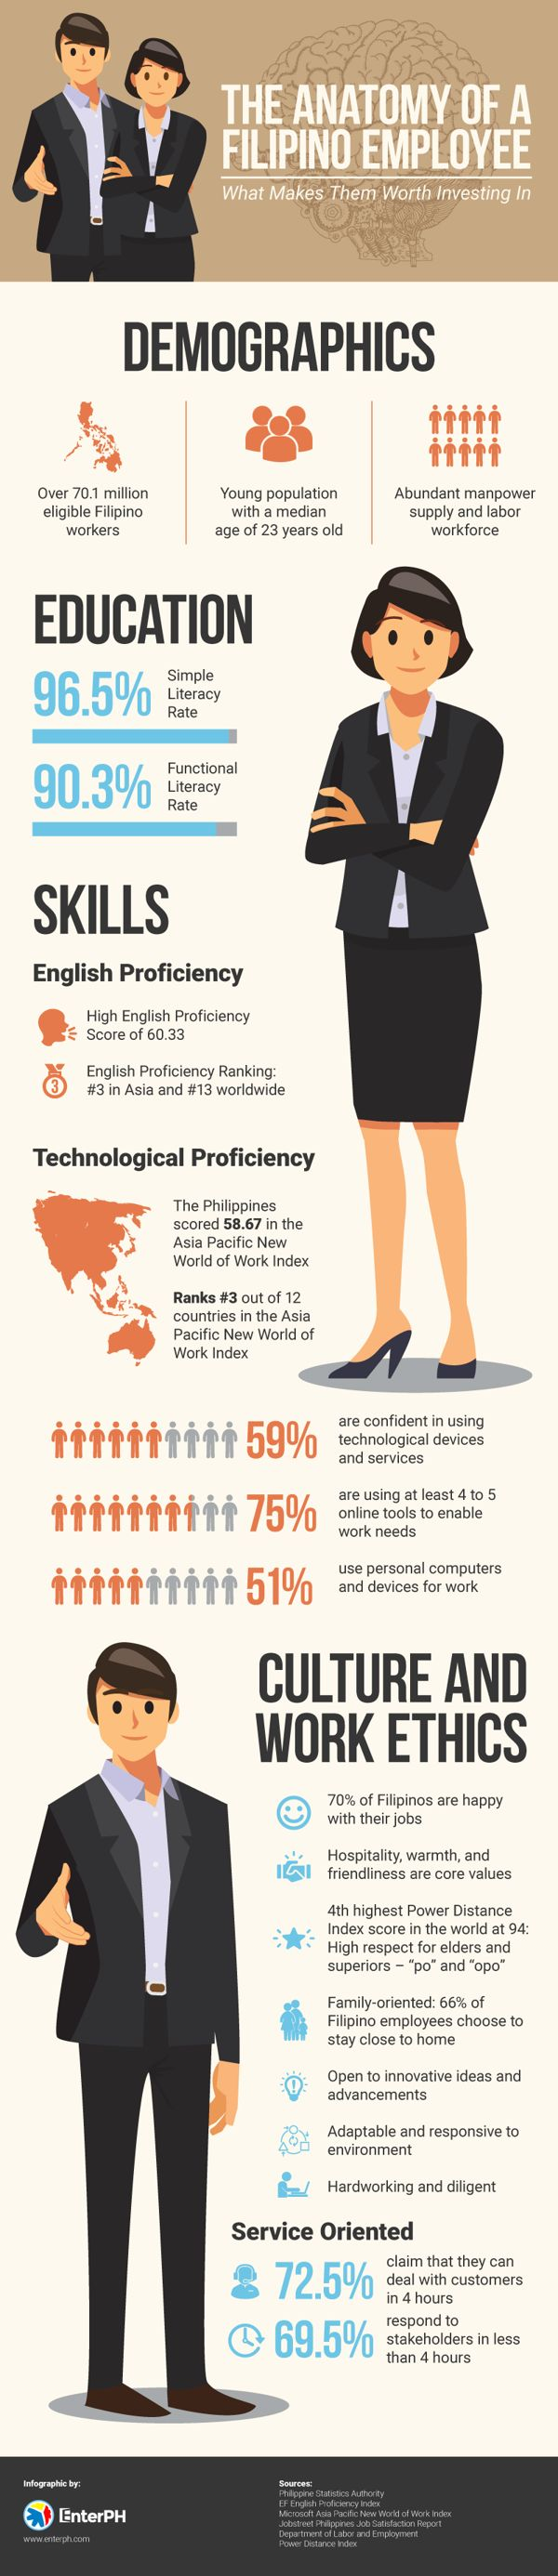 The Anatomy of a Filipino Employee: What Makes Them Worth Investing In 1